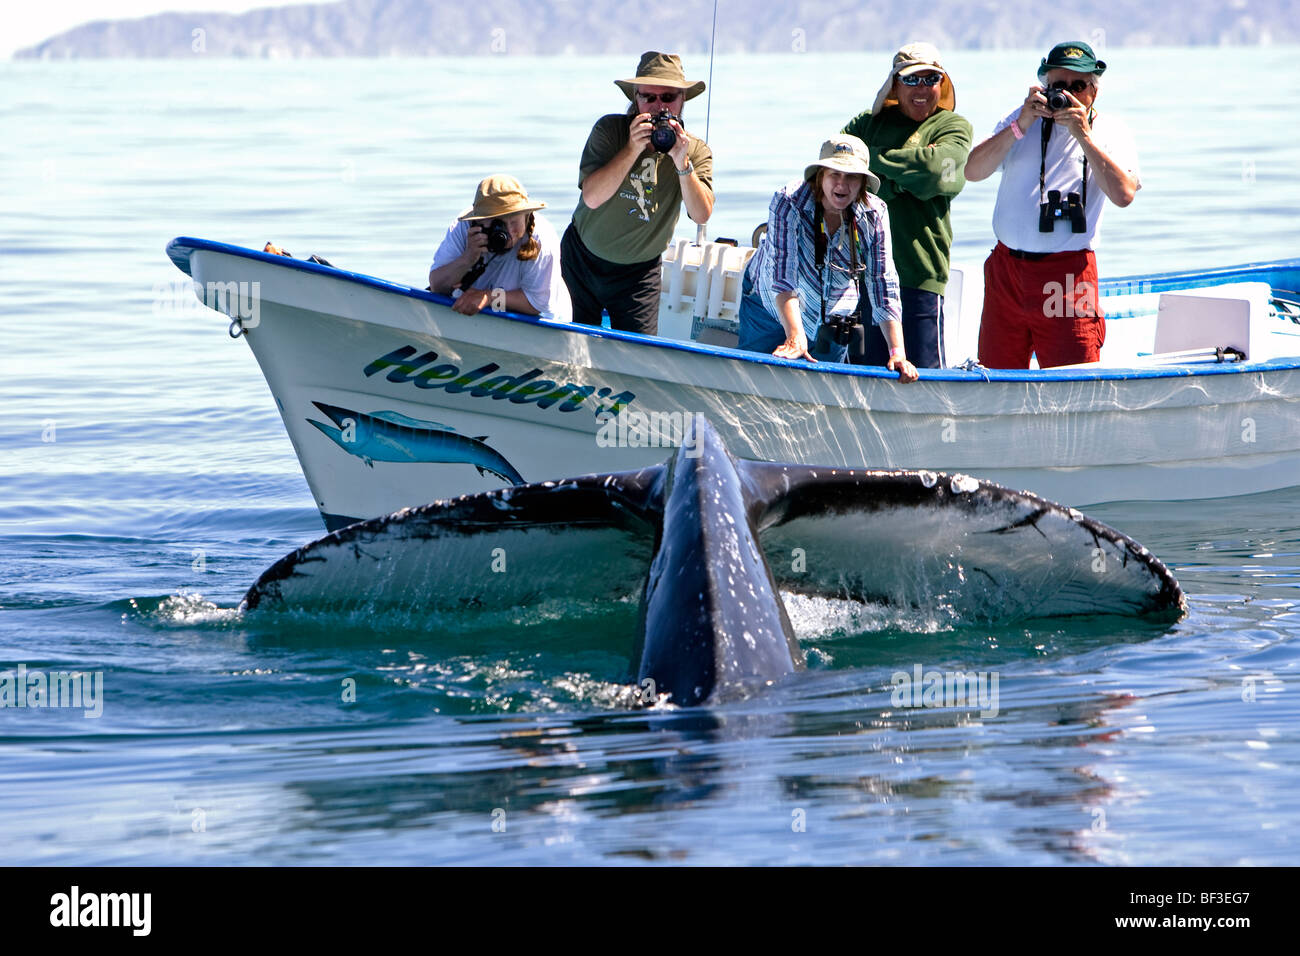 Humpback Whale (Megaptera novaeangliae). Whale-watchers watching diving whale. - Stock Image